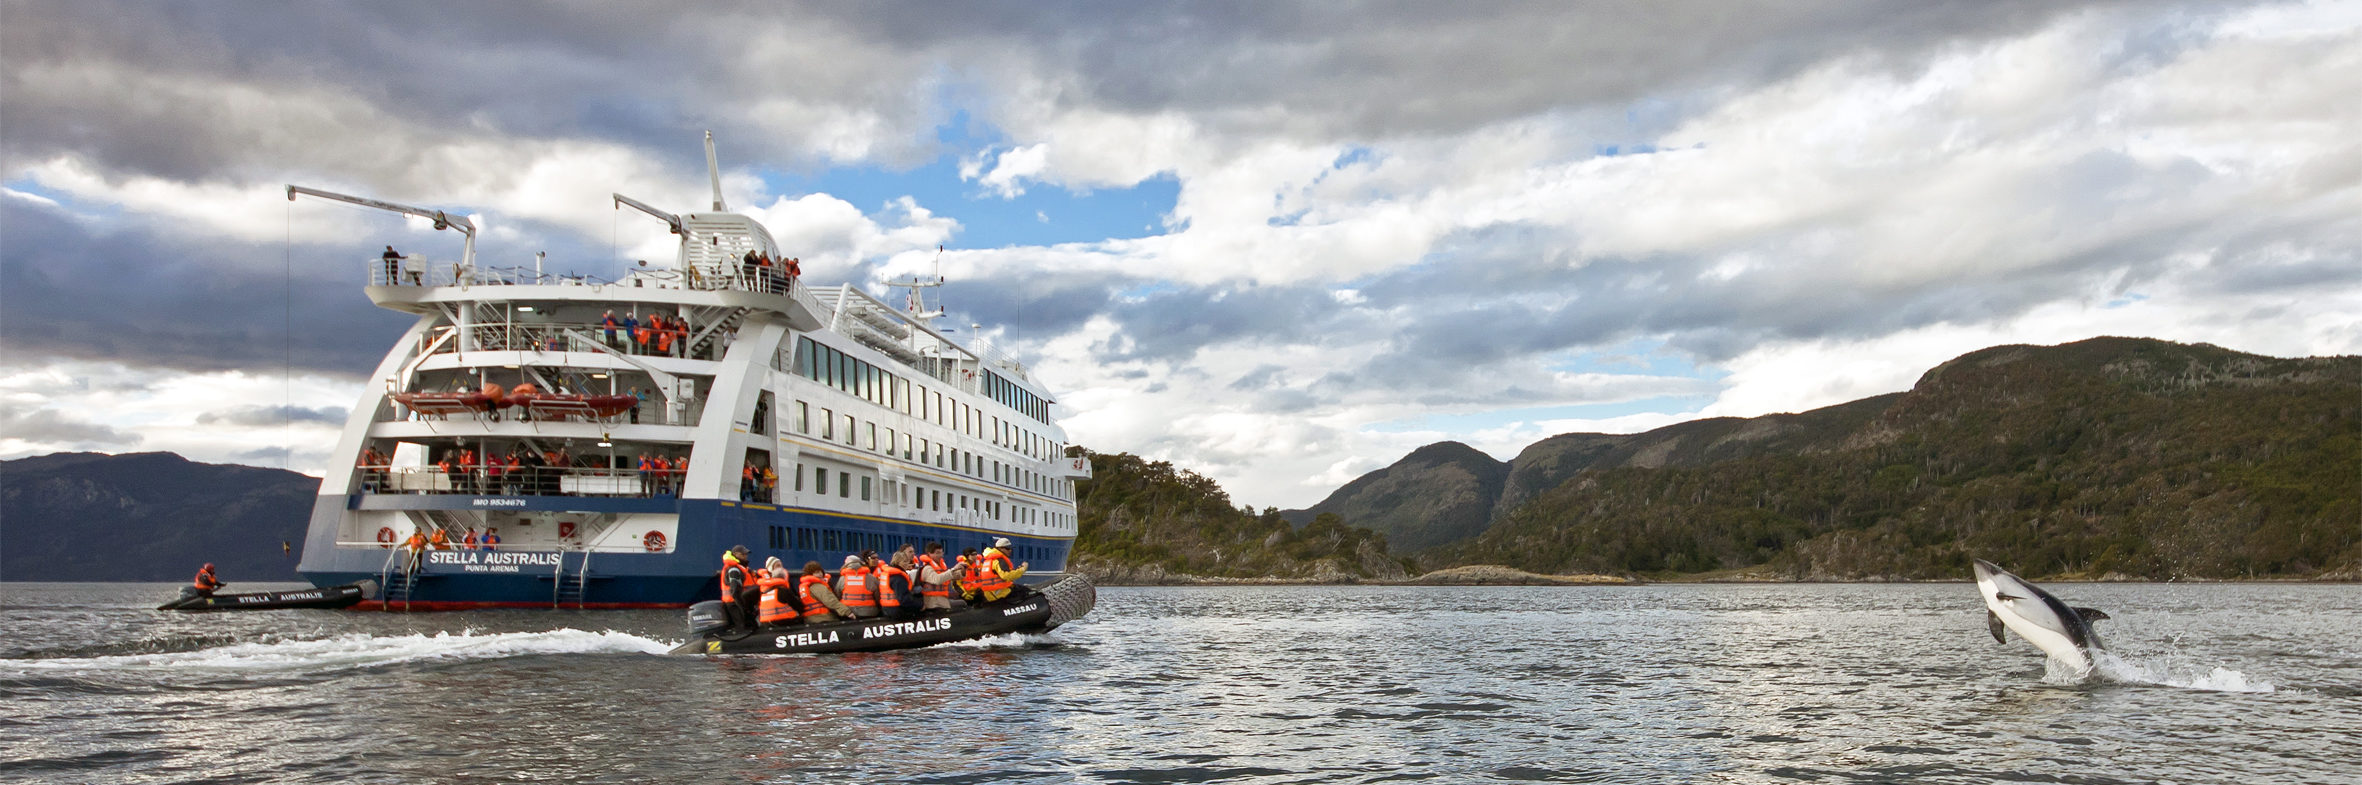 Patagonia with Cruceros Australis